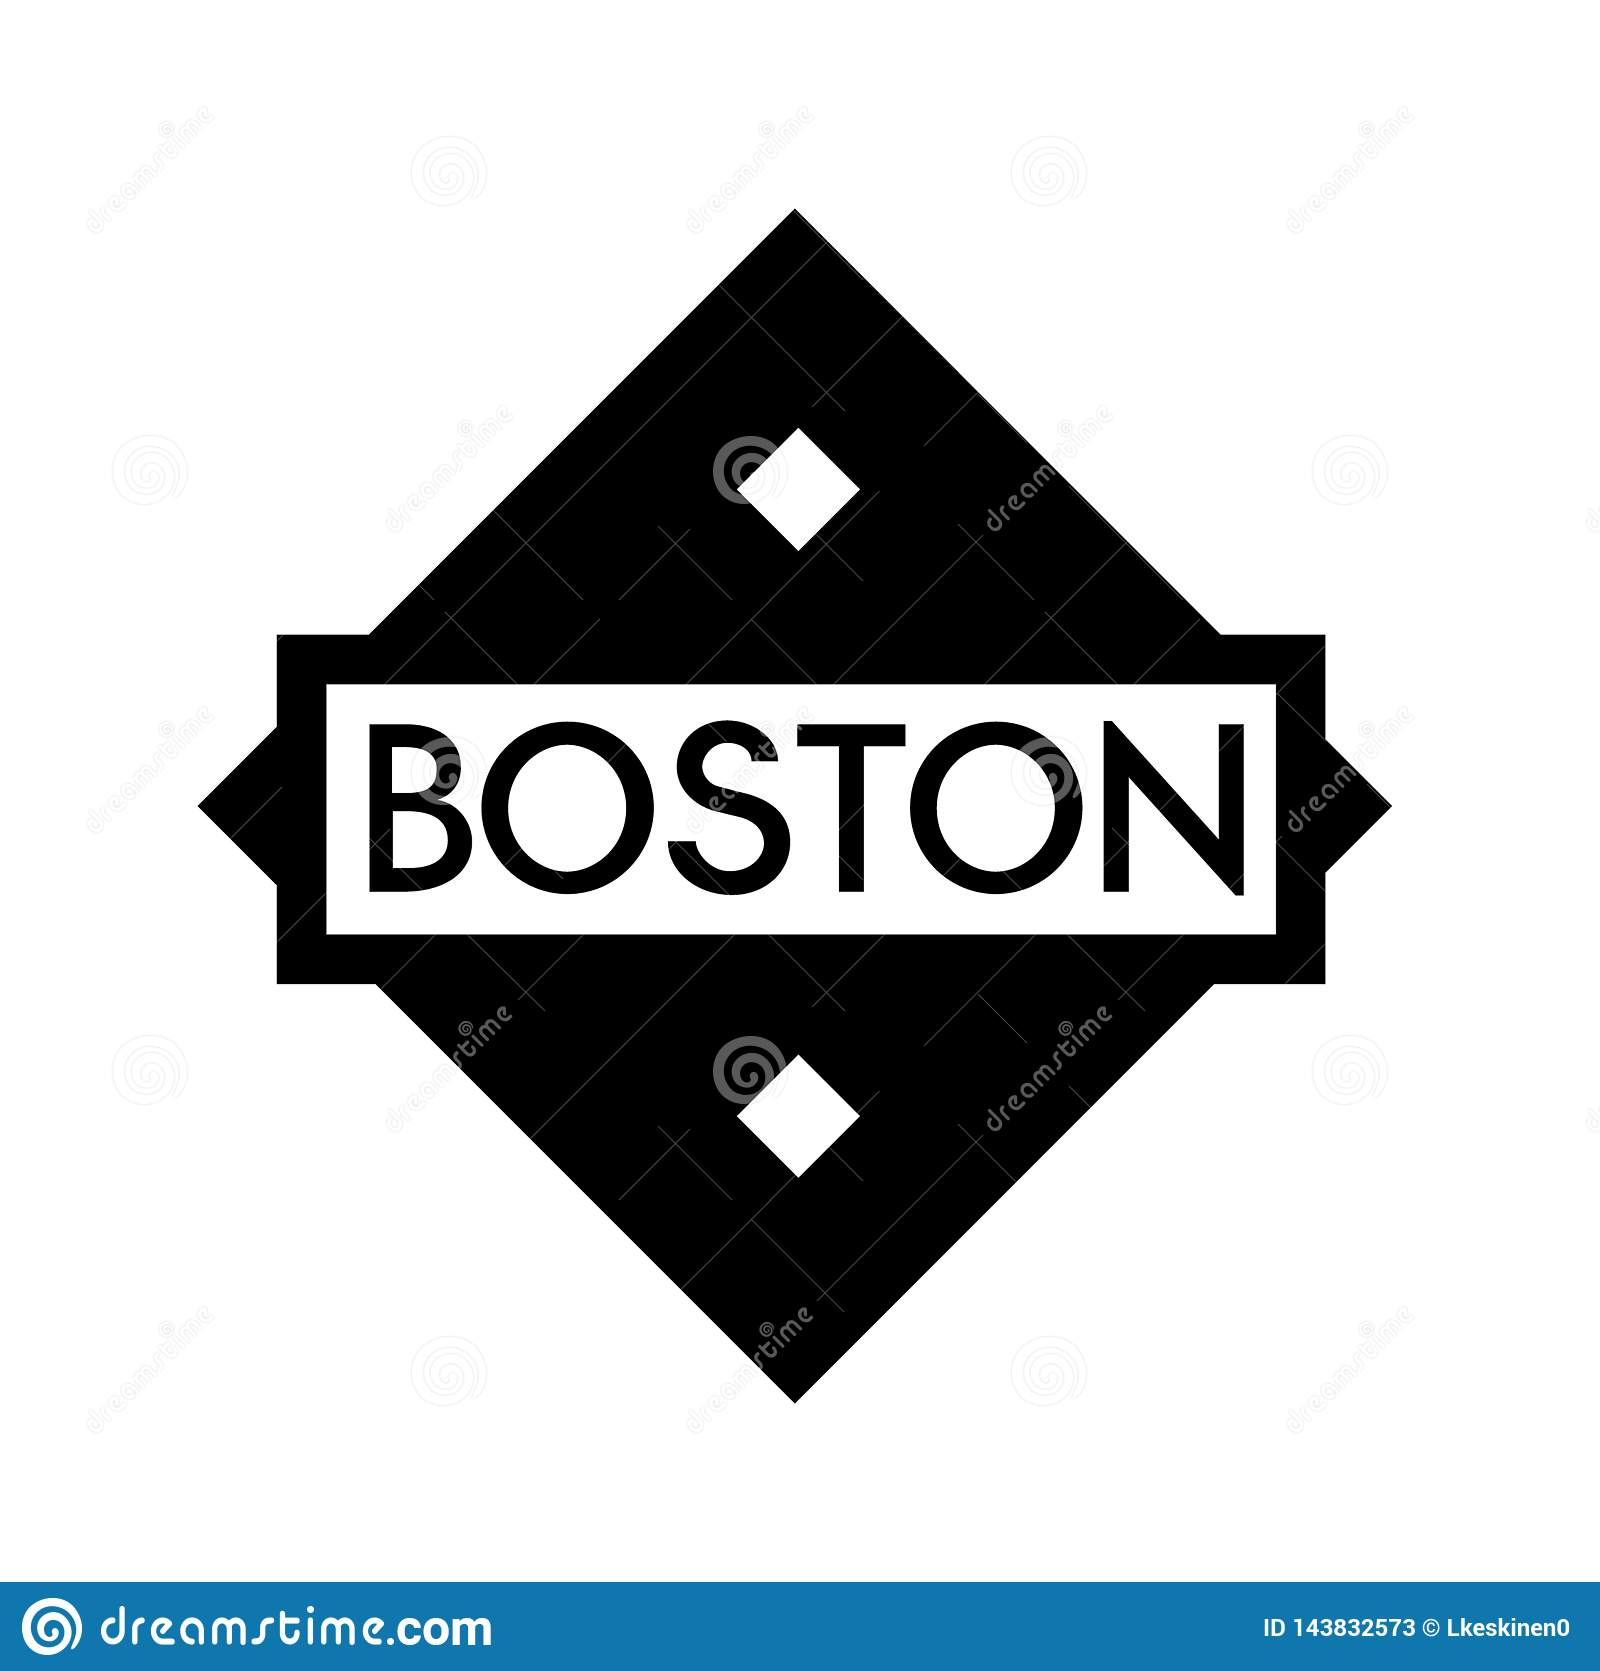 BOSTON-Stempel auf Wei?